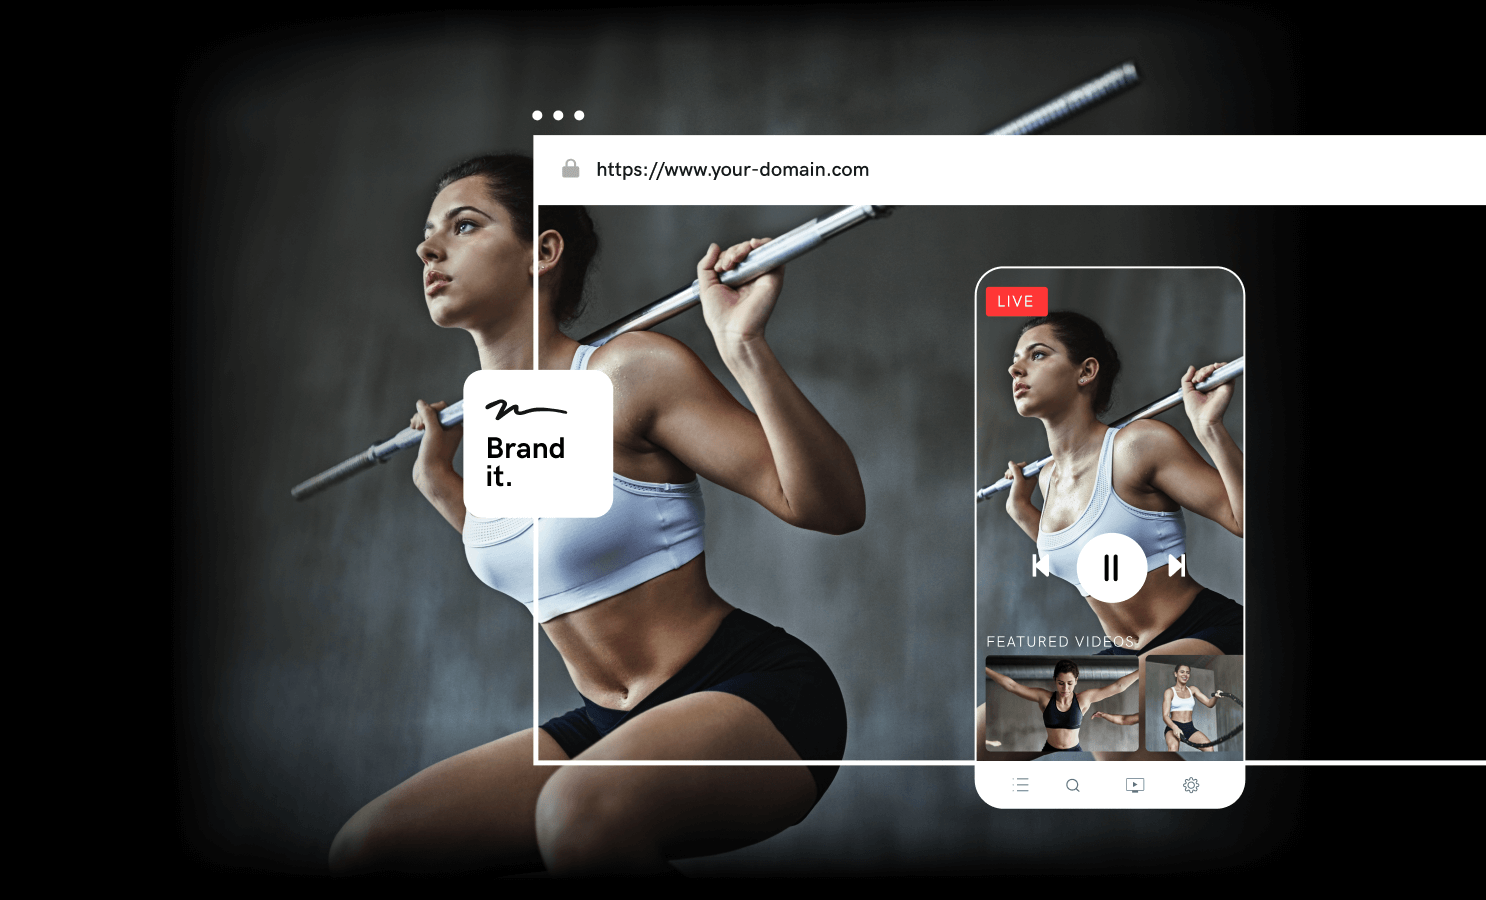 Fitness video streaming site